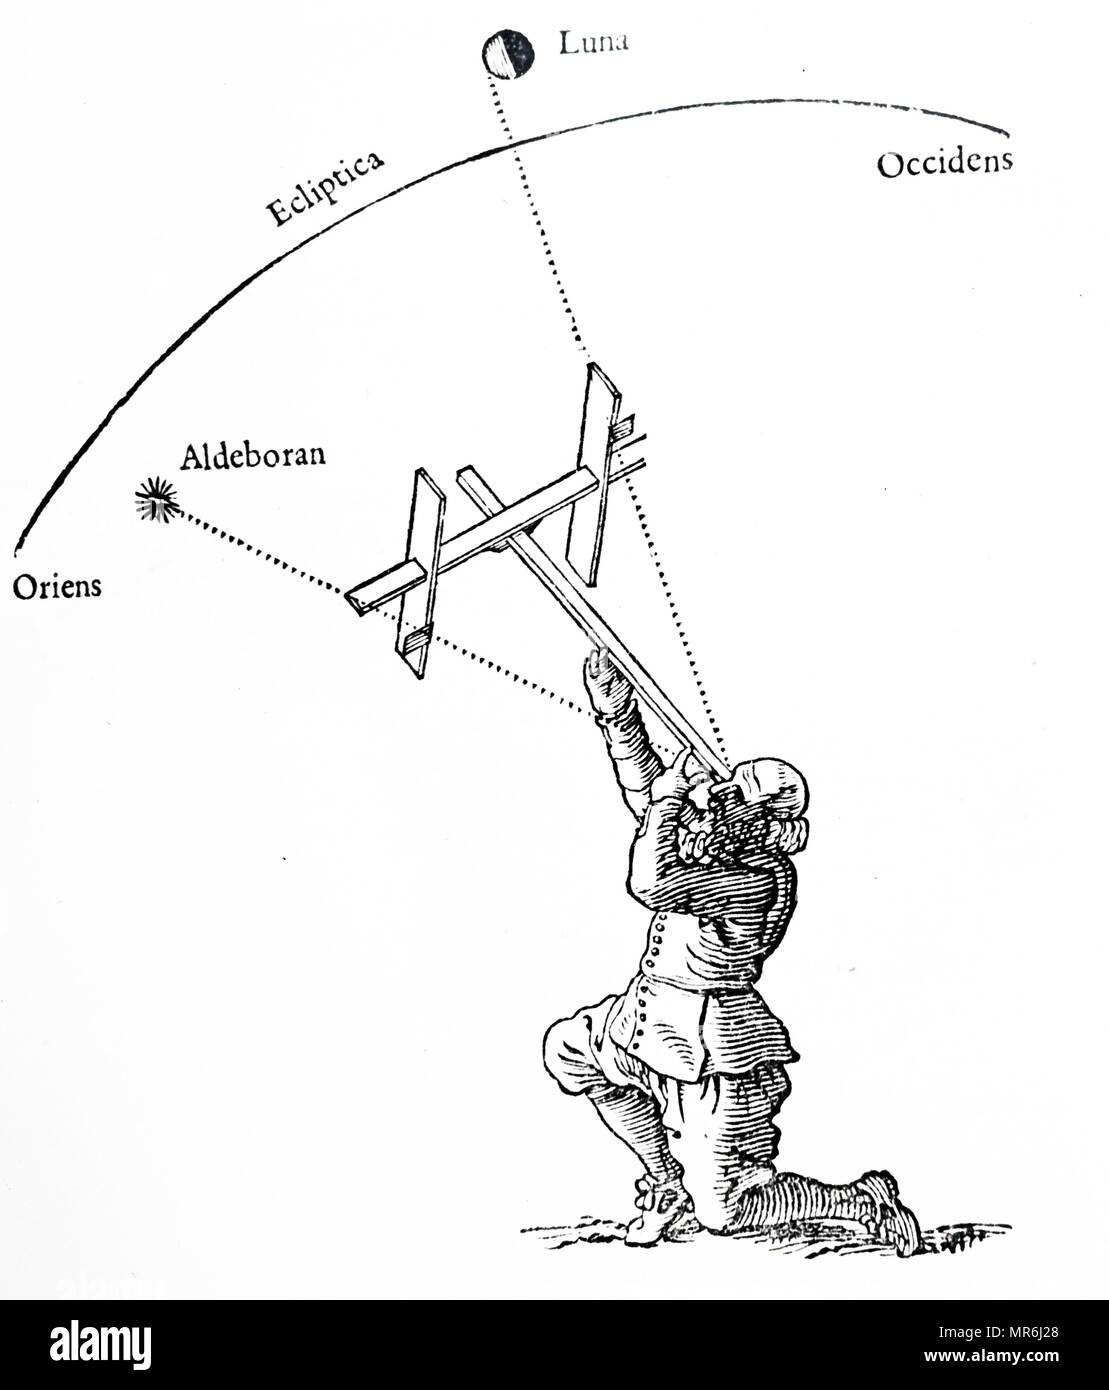 Measuring lunar distance by means of a fixed star (Aldebaran), using a form of cross-staff. - Stock Image